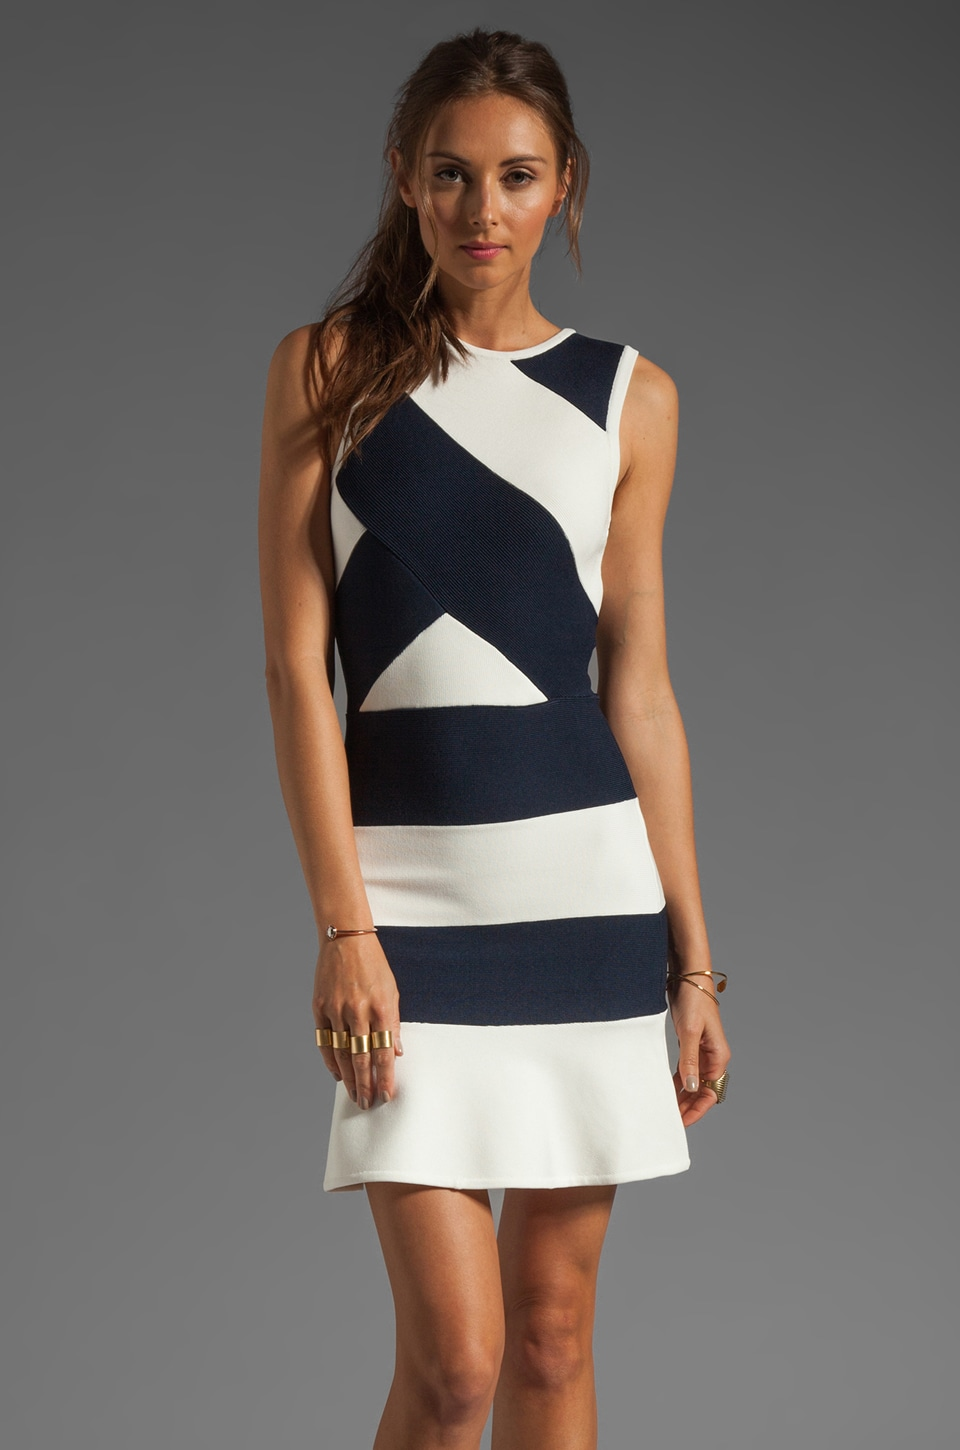 camilla and marc Division Knit Bandage Dress in Navy/White